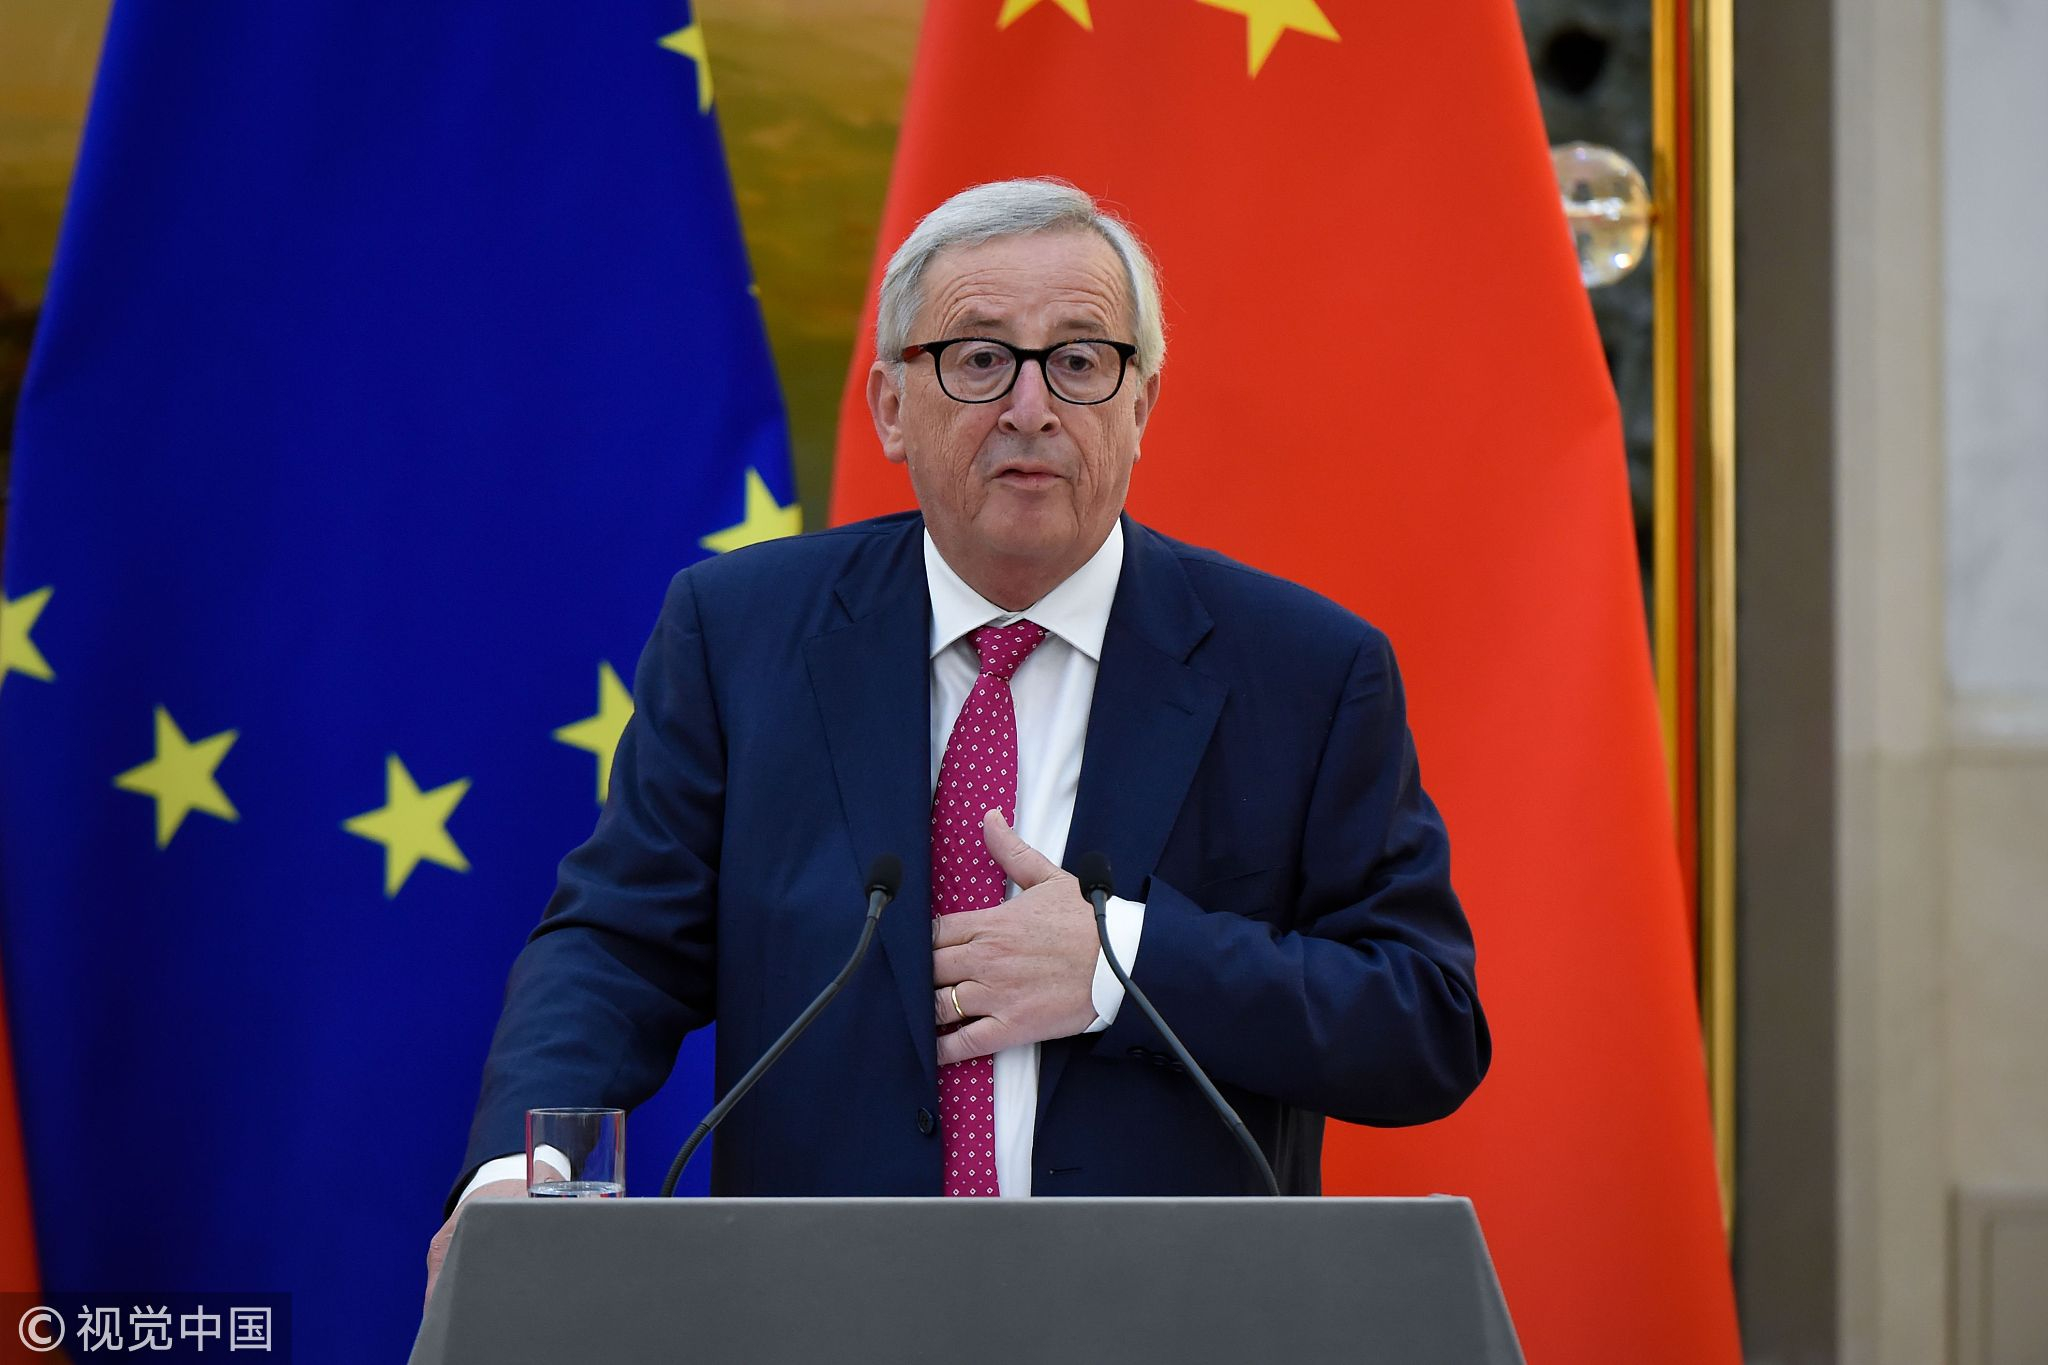 China, EU stand together to face the world's challenges